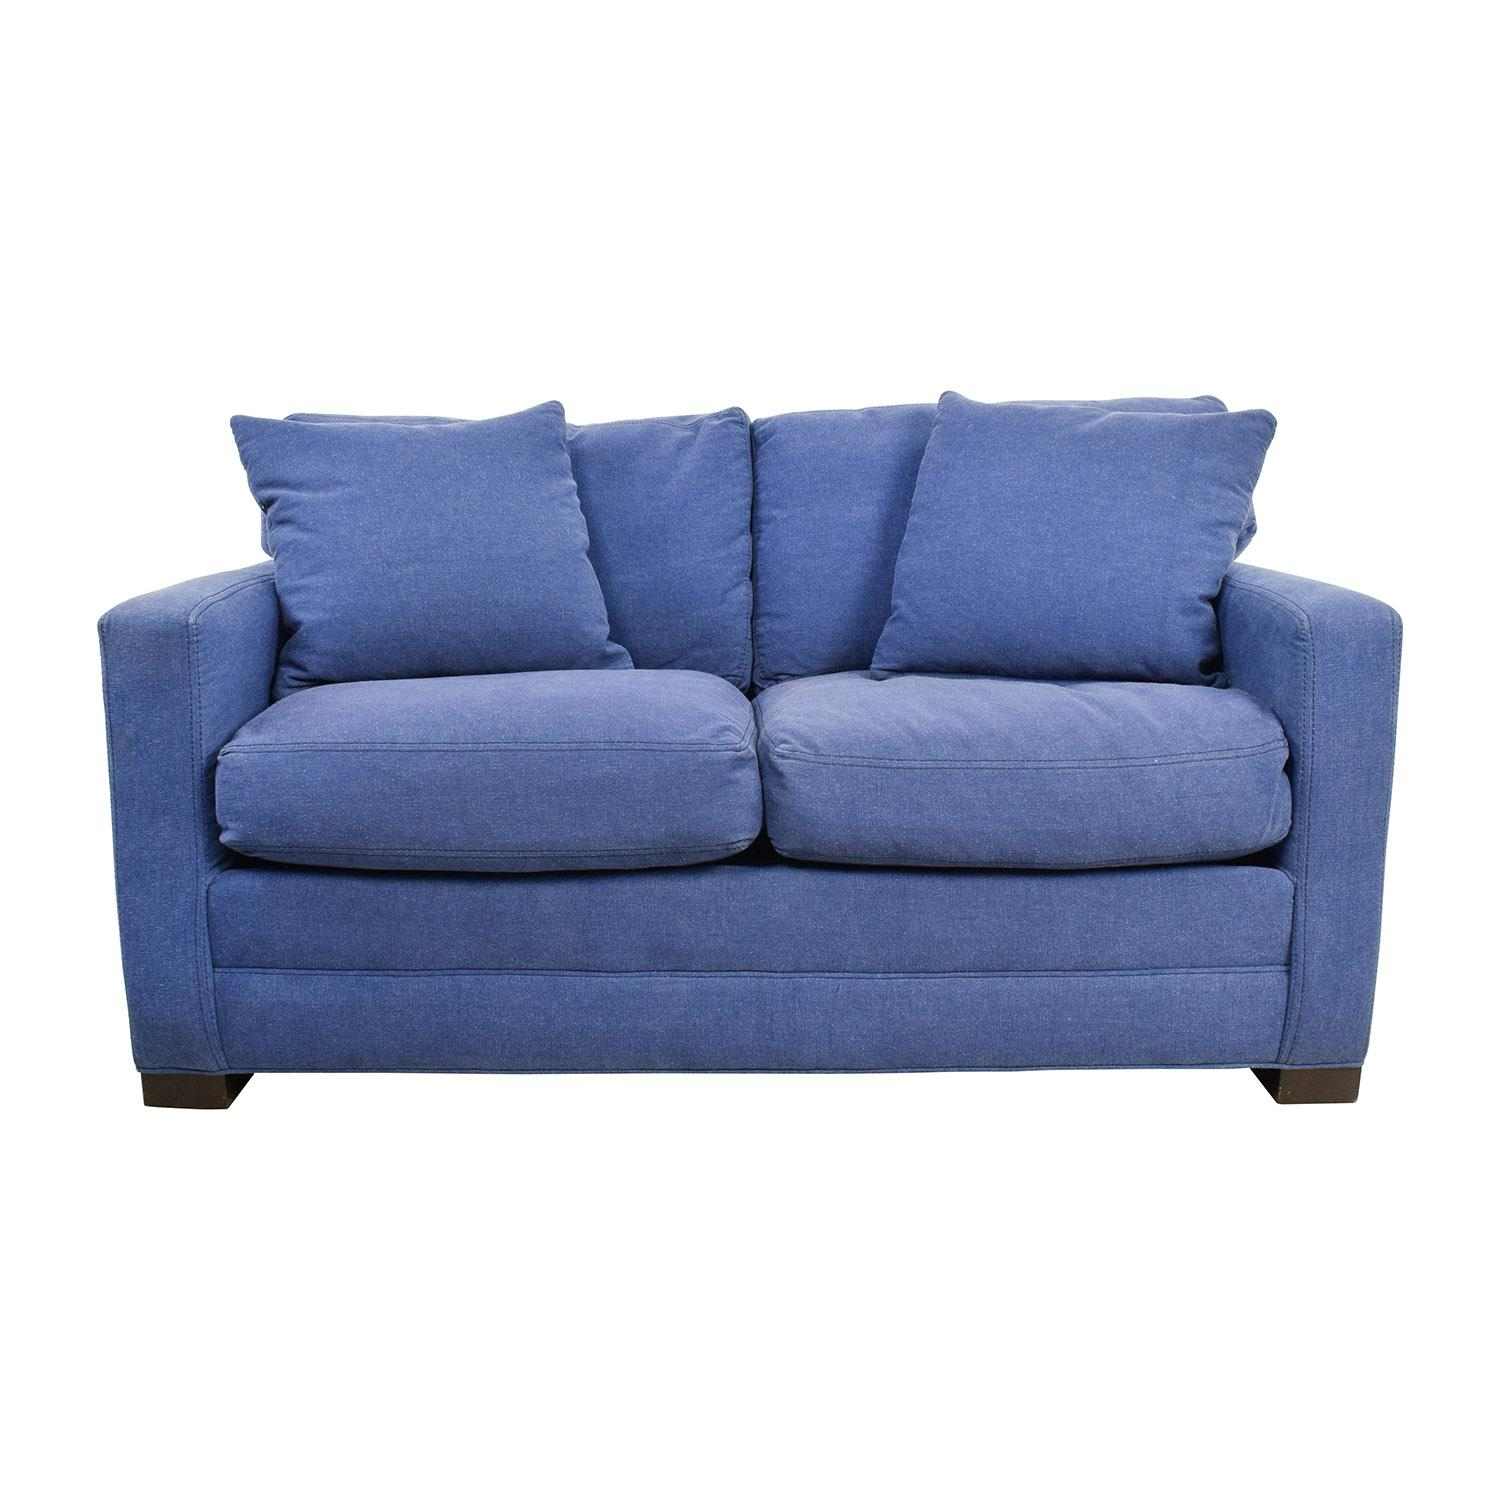 79% Off – Lee Industries Lee Industries Denim Blue Loveseat / Sofas Pertaining To Denim Loveseats (View 7 of 20)